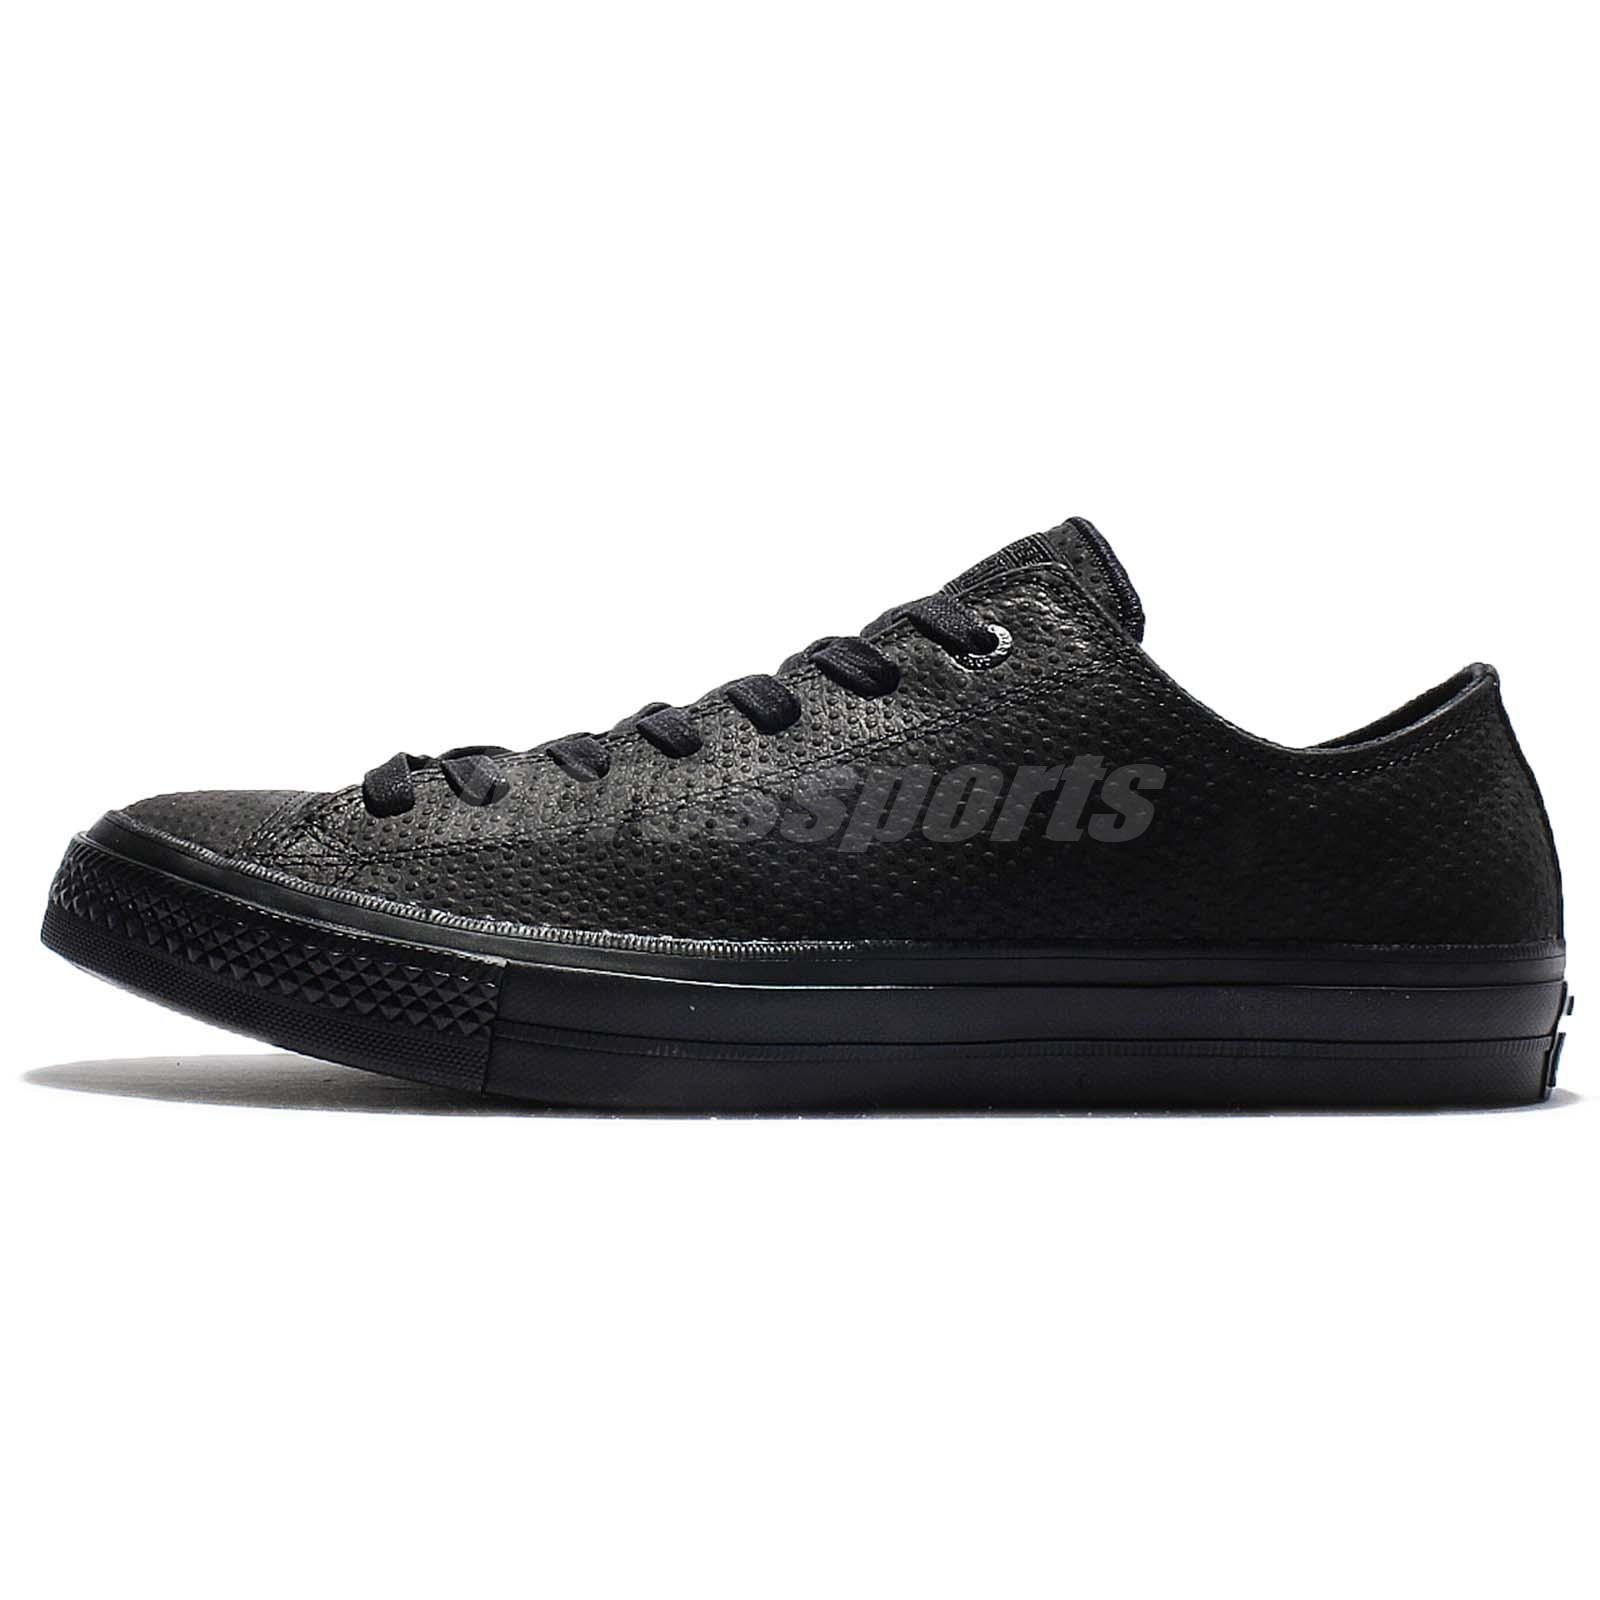 Converse Chuck Taylor All Star II Lux Leather Low Top